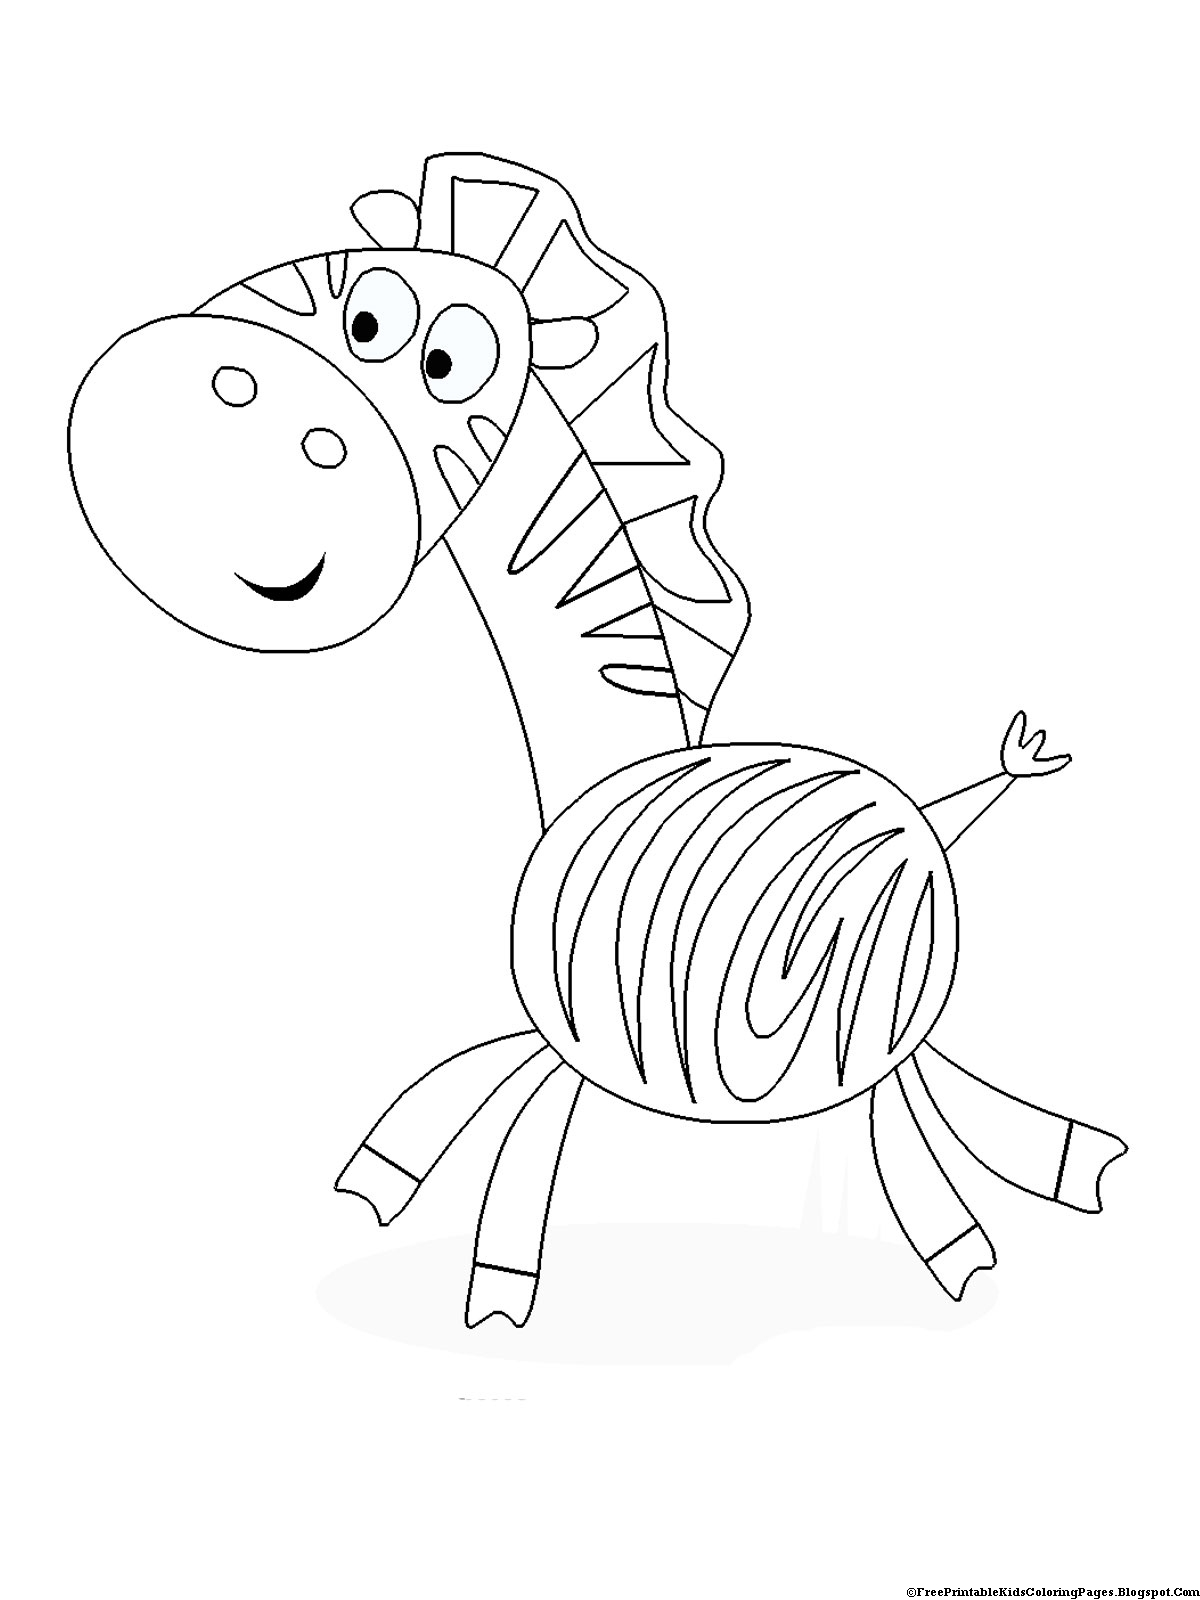 Zebra Coloring Pages - Free Printable Kids Coloring Pages | coloring sheets for toddlers